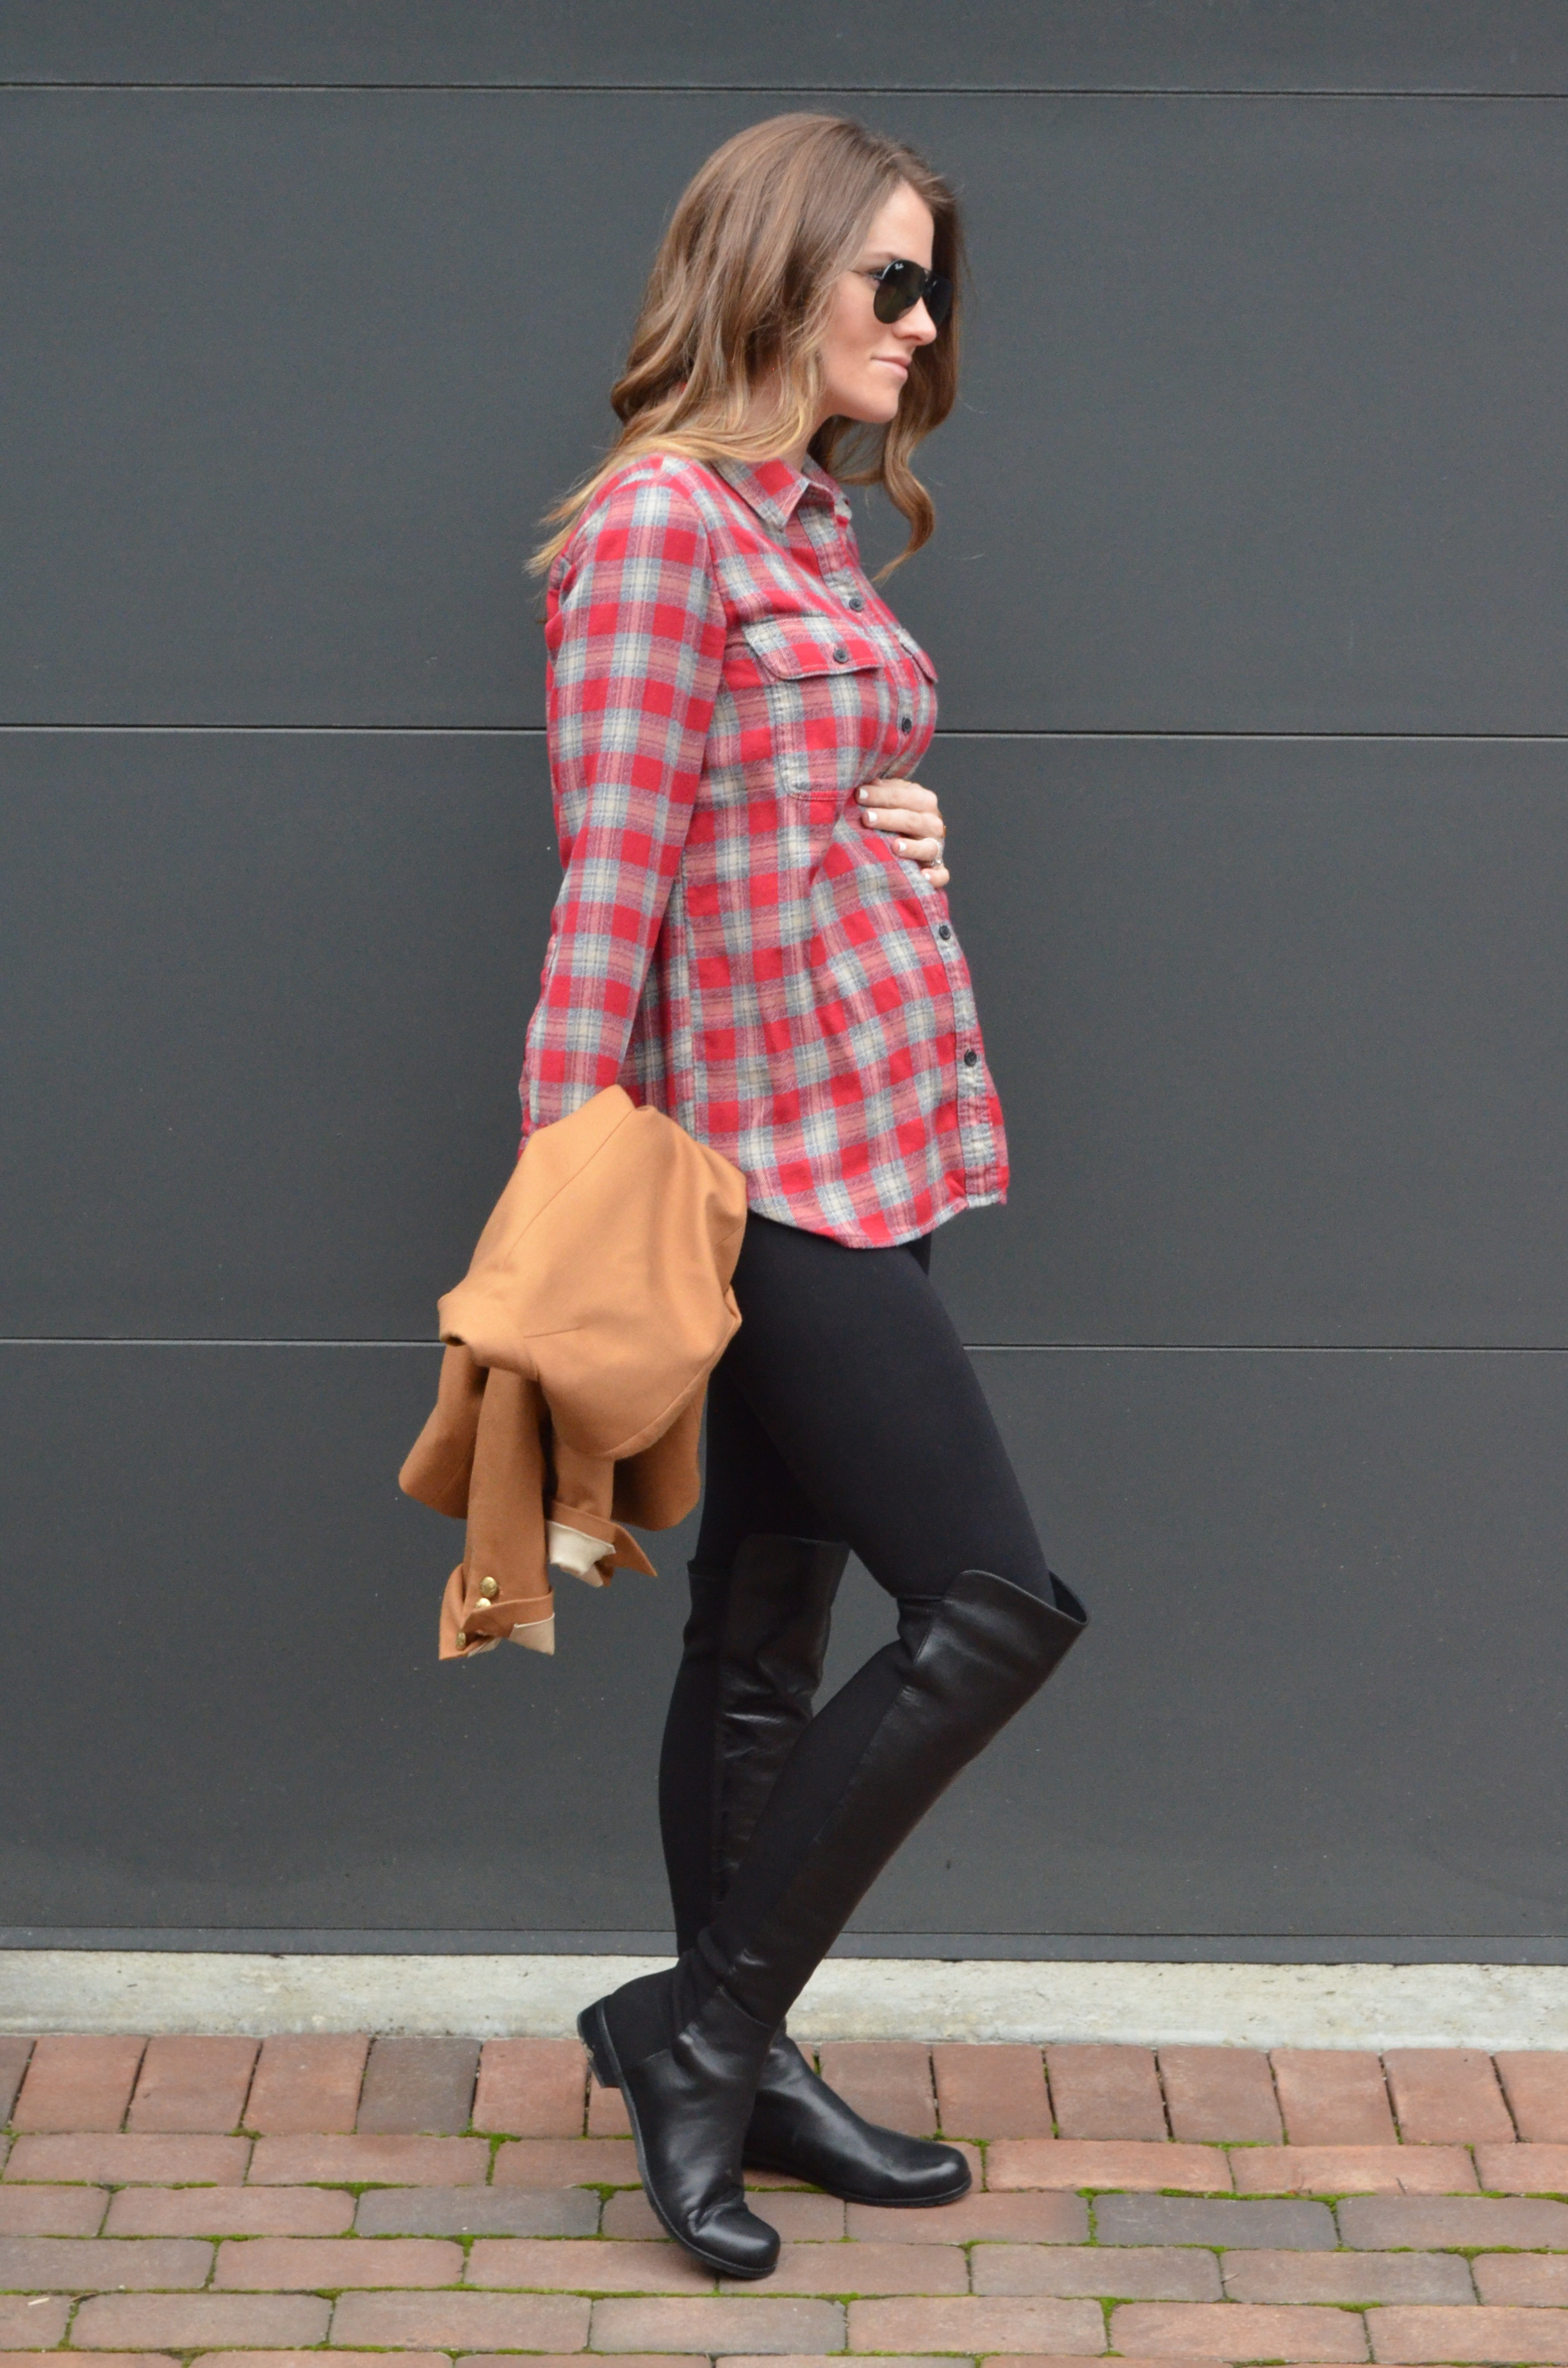 23 weeks pregnant outfit maternity style blogger plaid stuart weitzman boots